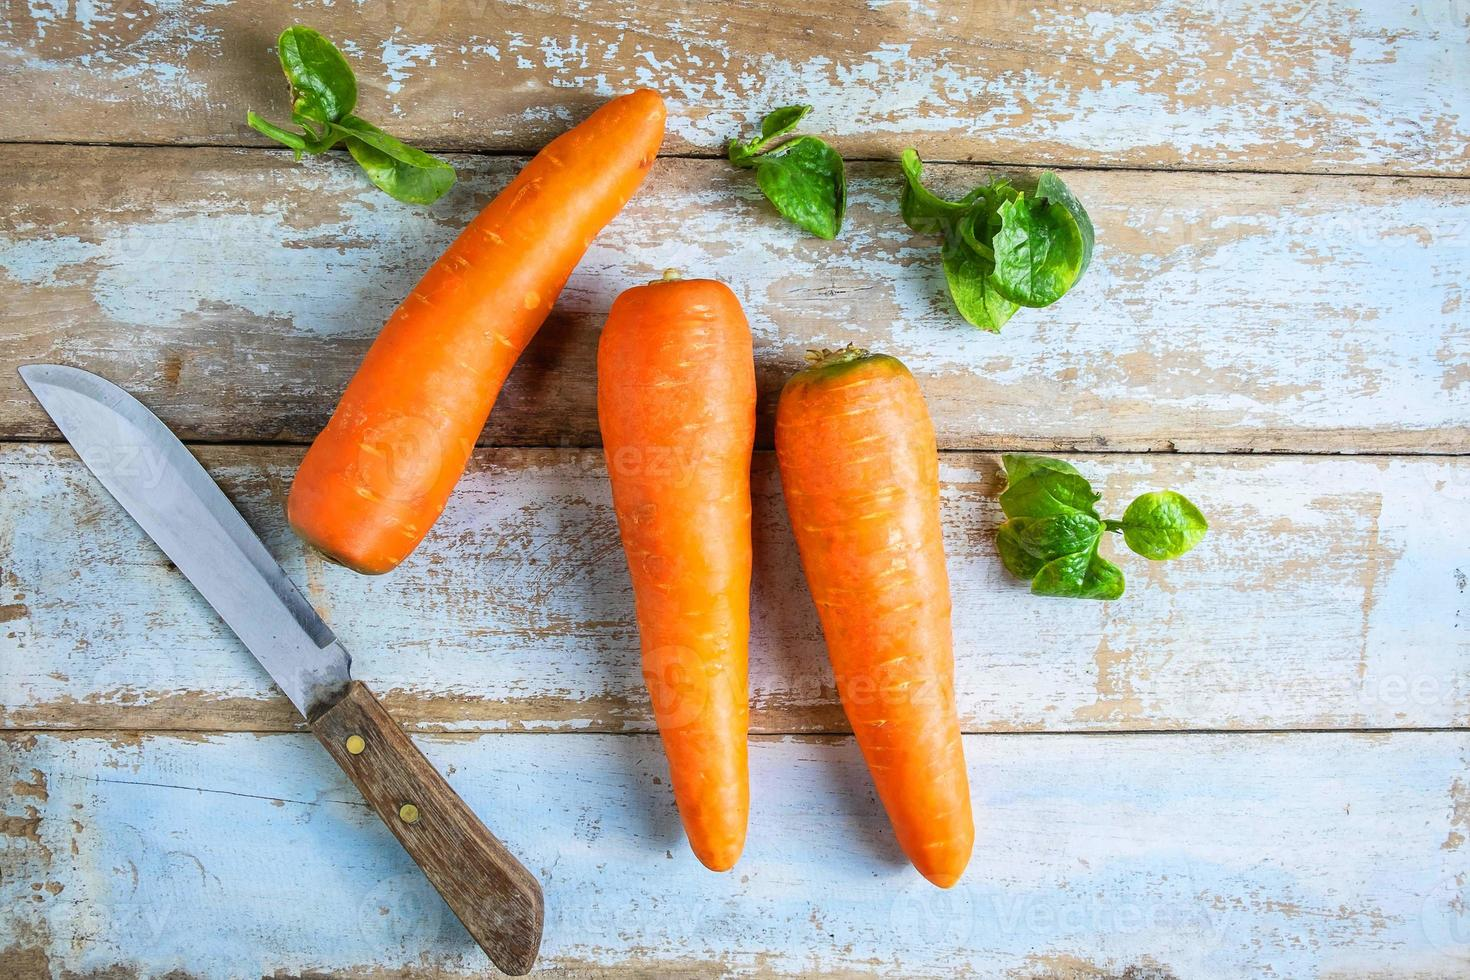 Carrots with a knife photo